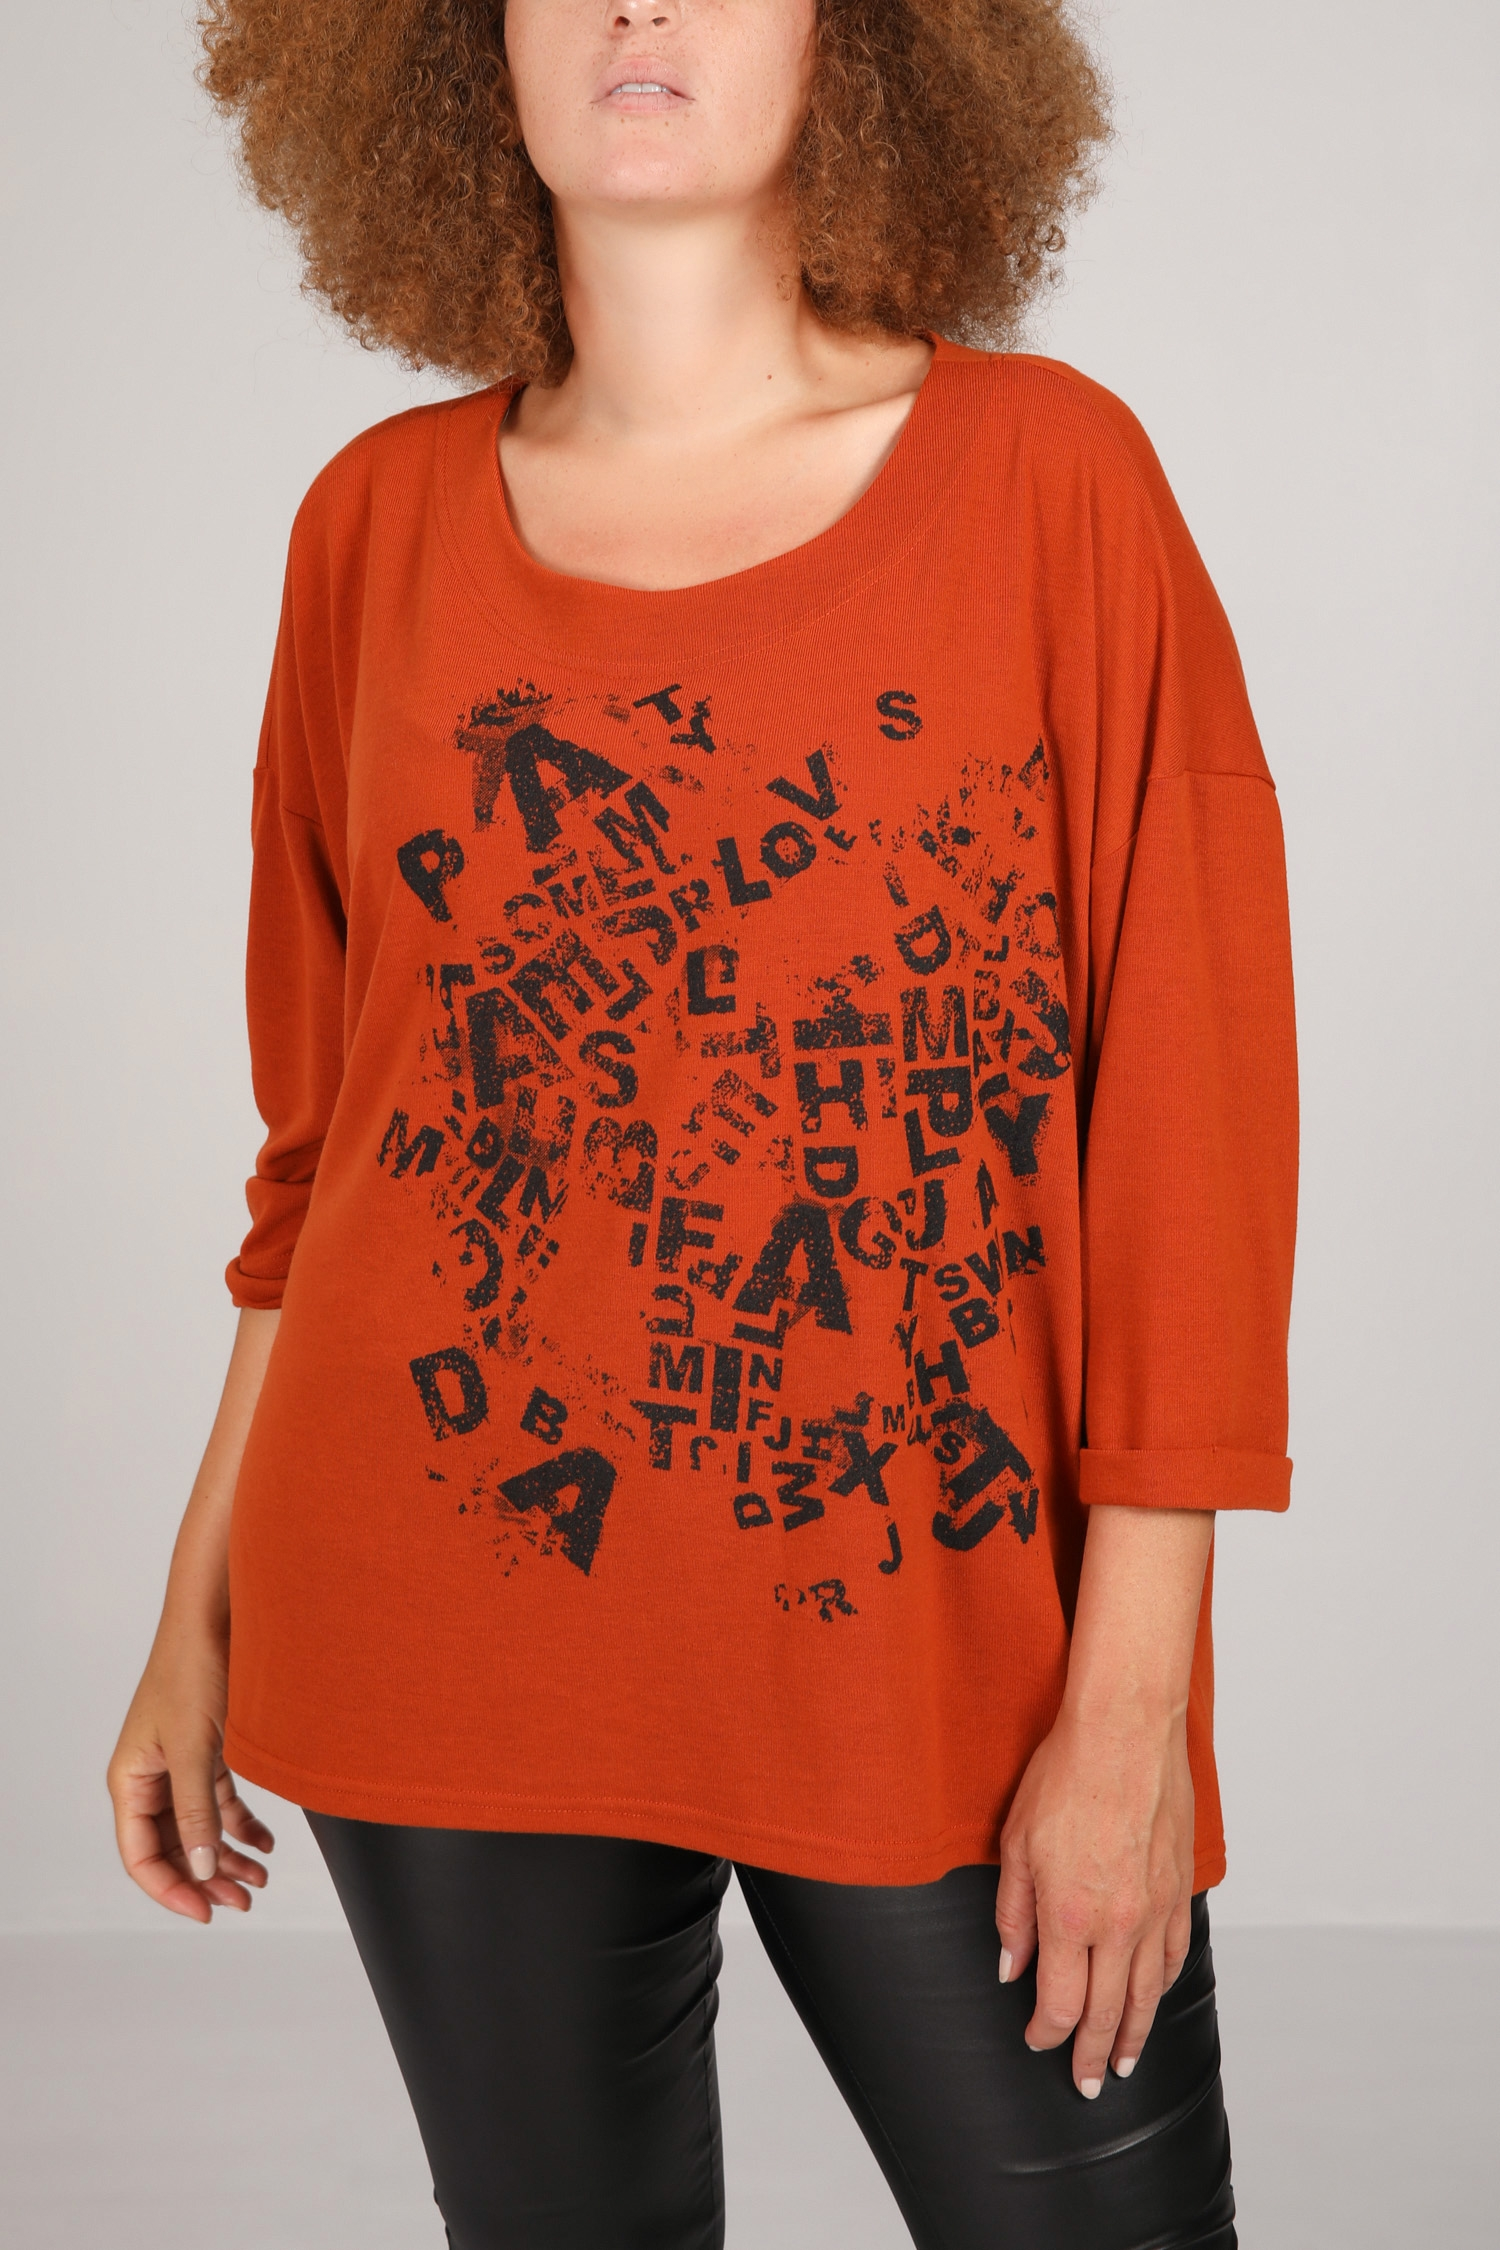 Fine mesh sweater with screen printing